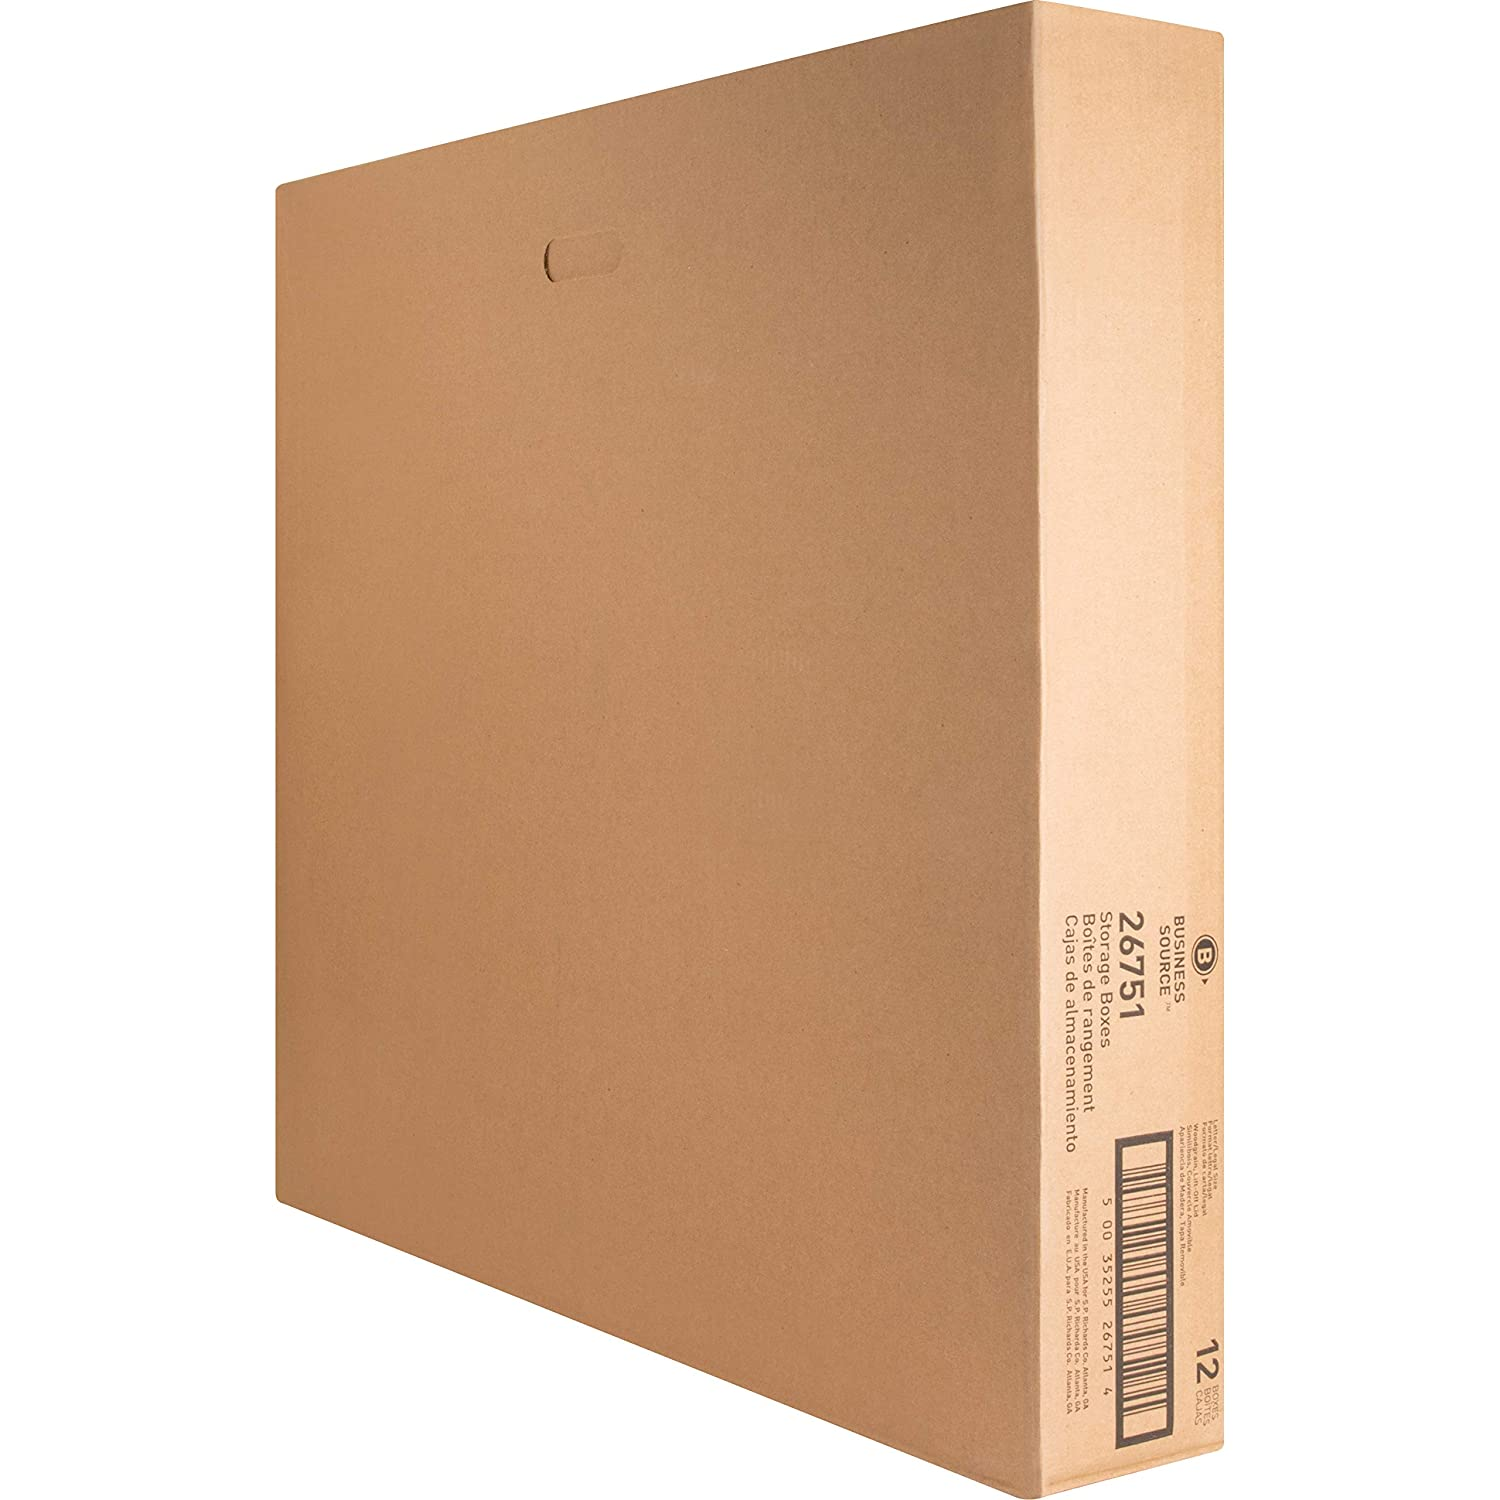 Amazon.com : Business Source Economy Medium-Duty Storage Boxes : Office Products